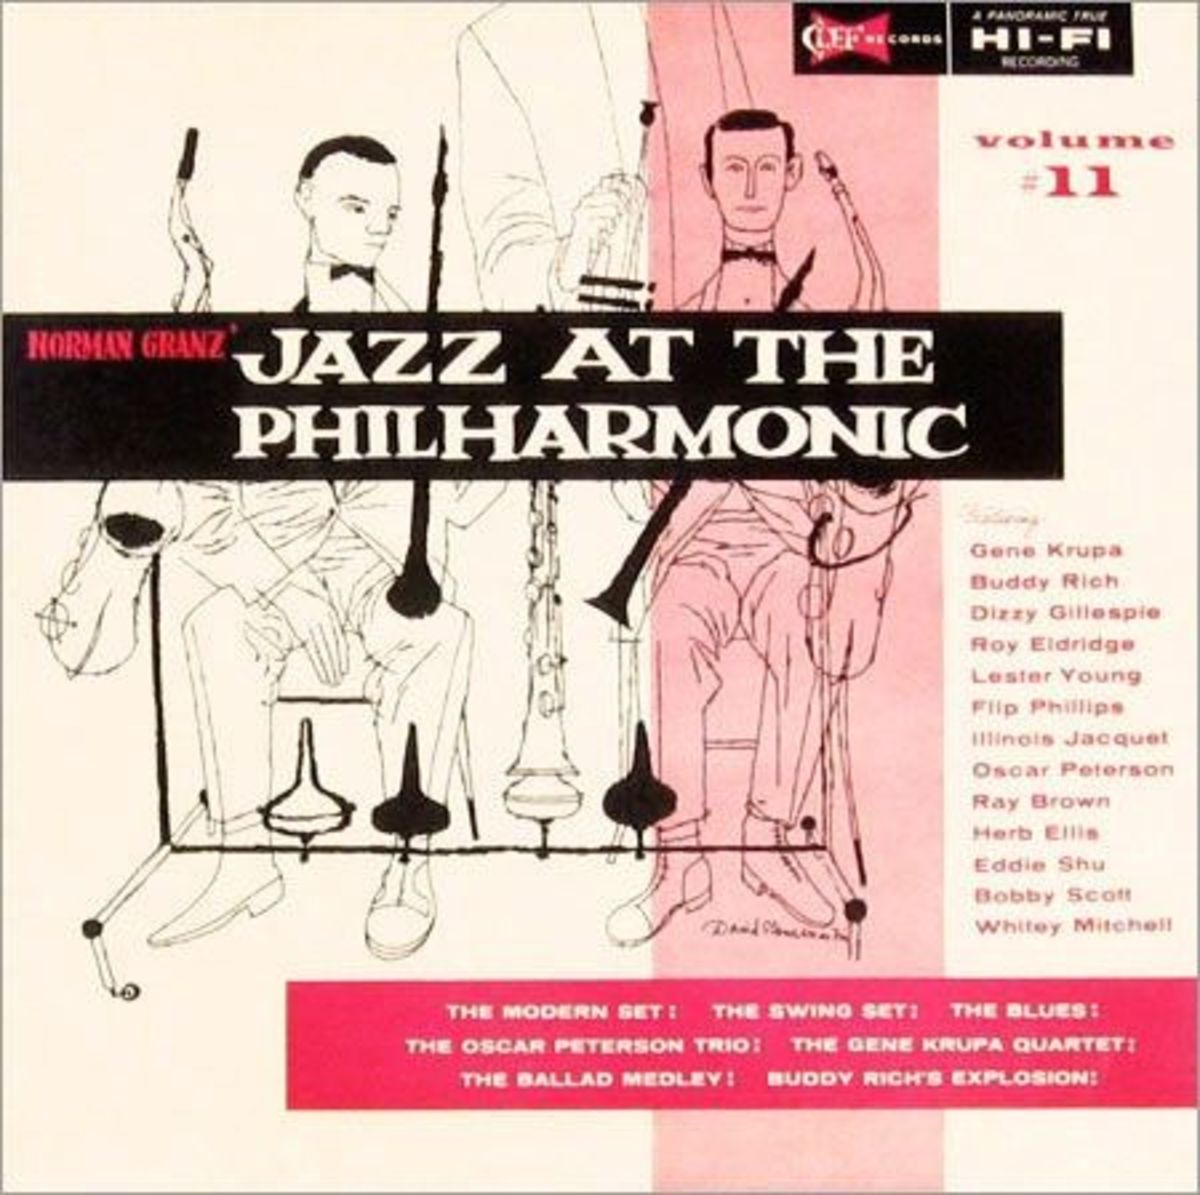 "Jazz At The Philharmonic, vol 11 Clef Records 12"" LP Vinyl Record (1954) Album Cover Art by David Stone Martin"